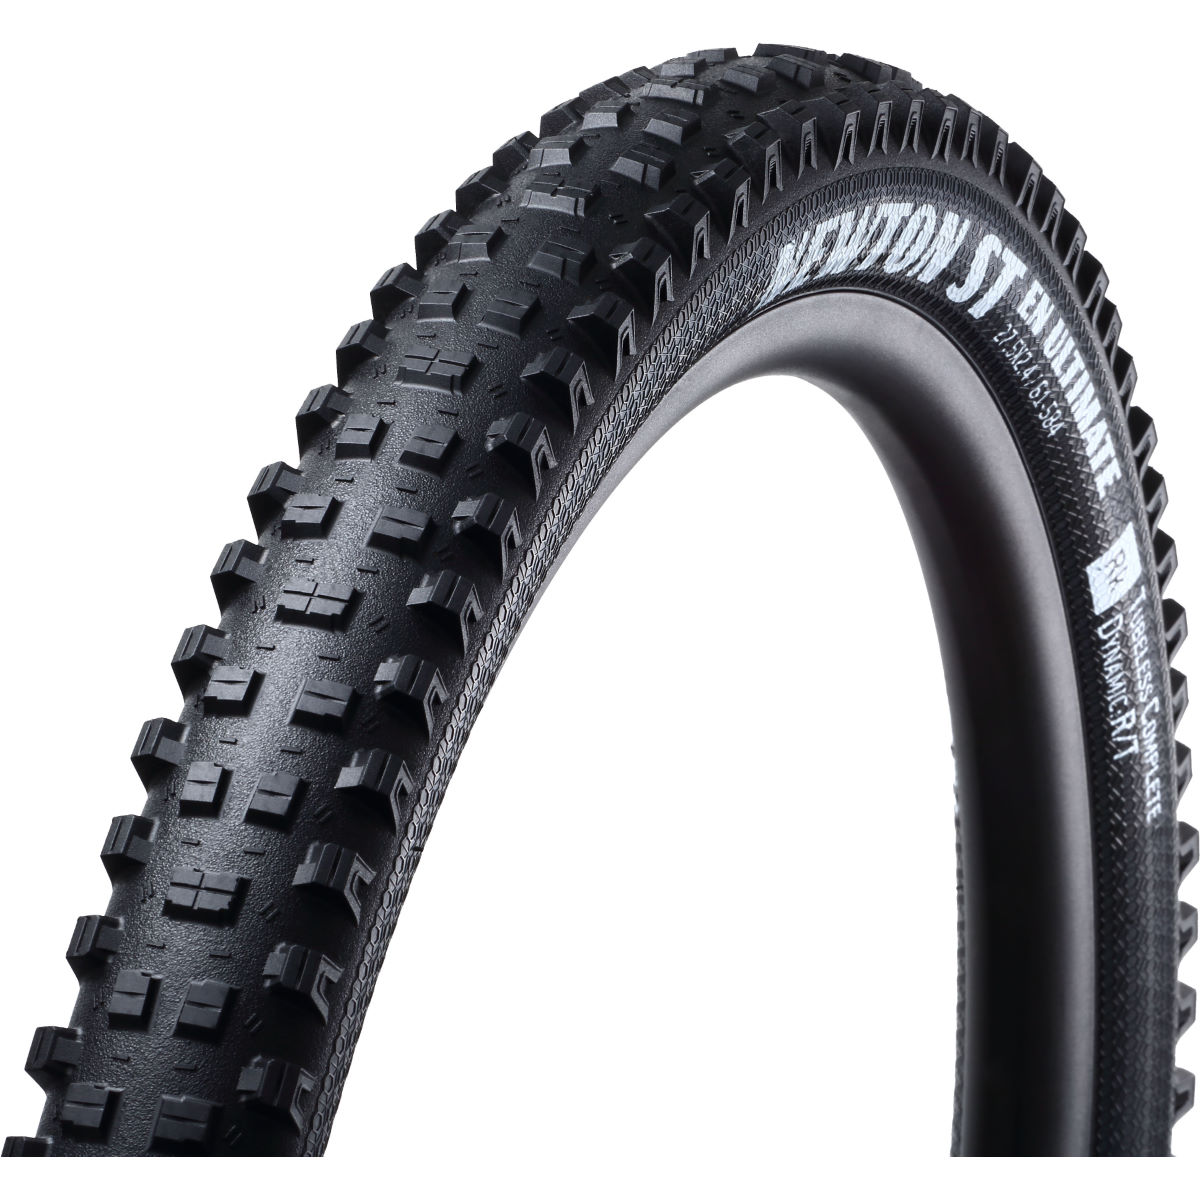 Goodyear Newton ST DH Ultimate Tubeless MTB Tyre - Cubiertas